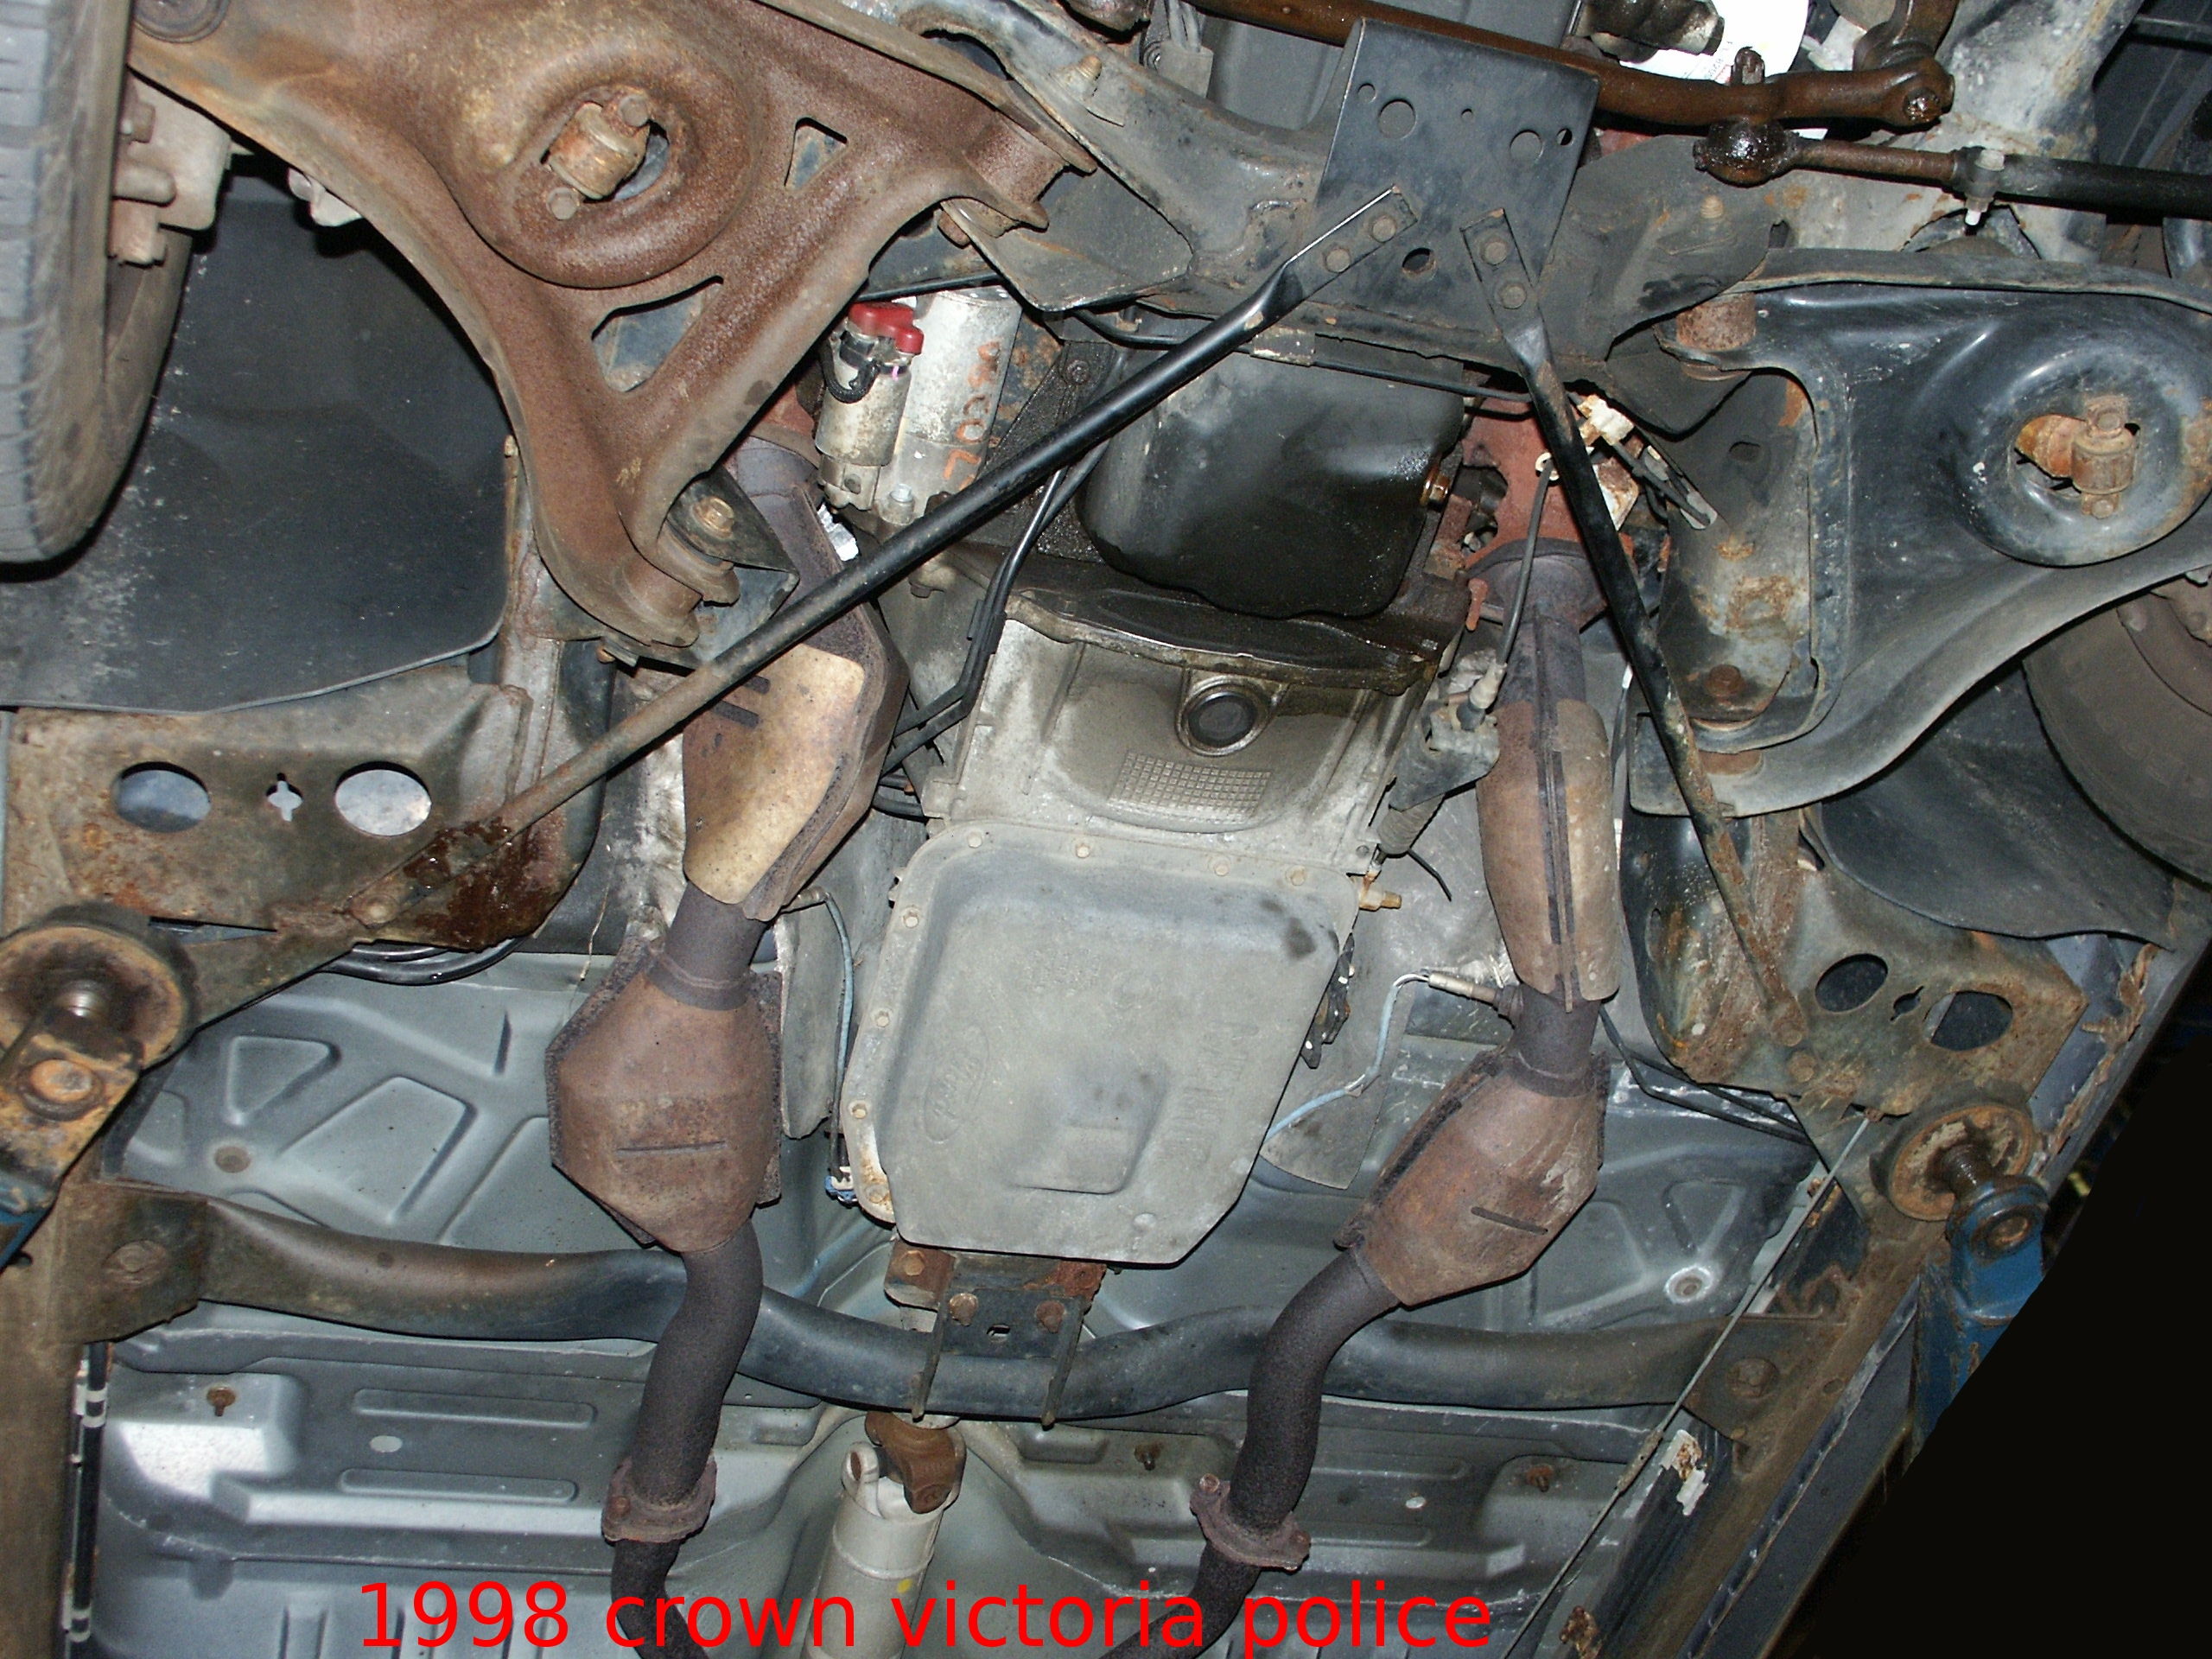 Classic And Muscle Cars besides Ford Taurus 2000 Ford Taurus Power Steering Hose Replacement moreover 1998 4 6 Ford Crown Victoria Starter Location as well 96 Ford Ranger Coil Pack Wiring Diagram besides Cadillac Deville Pcm Location. on 1999 mercury cougar engine diagram